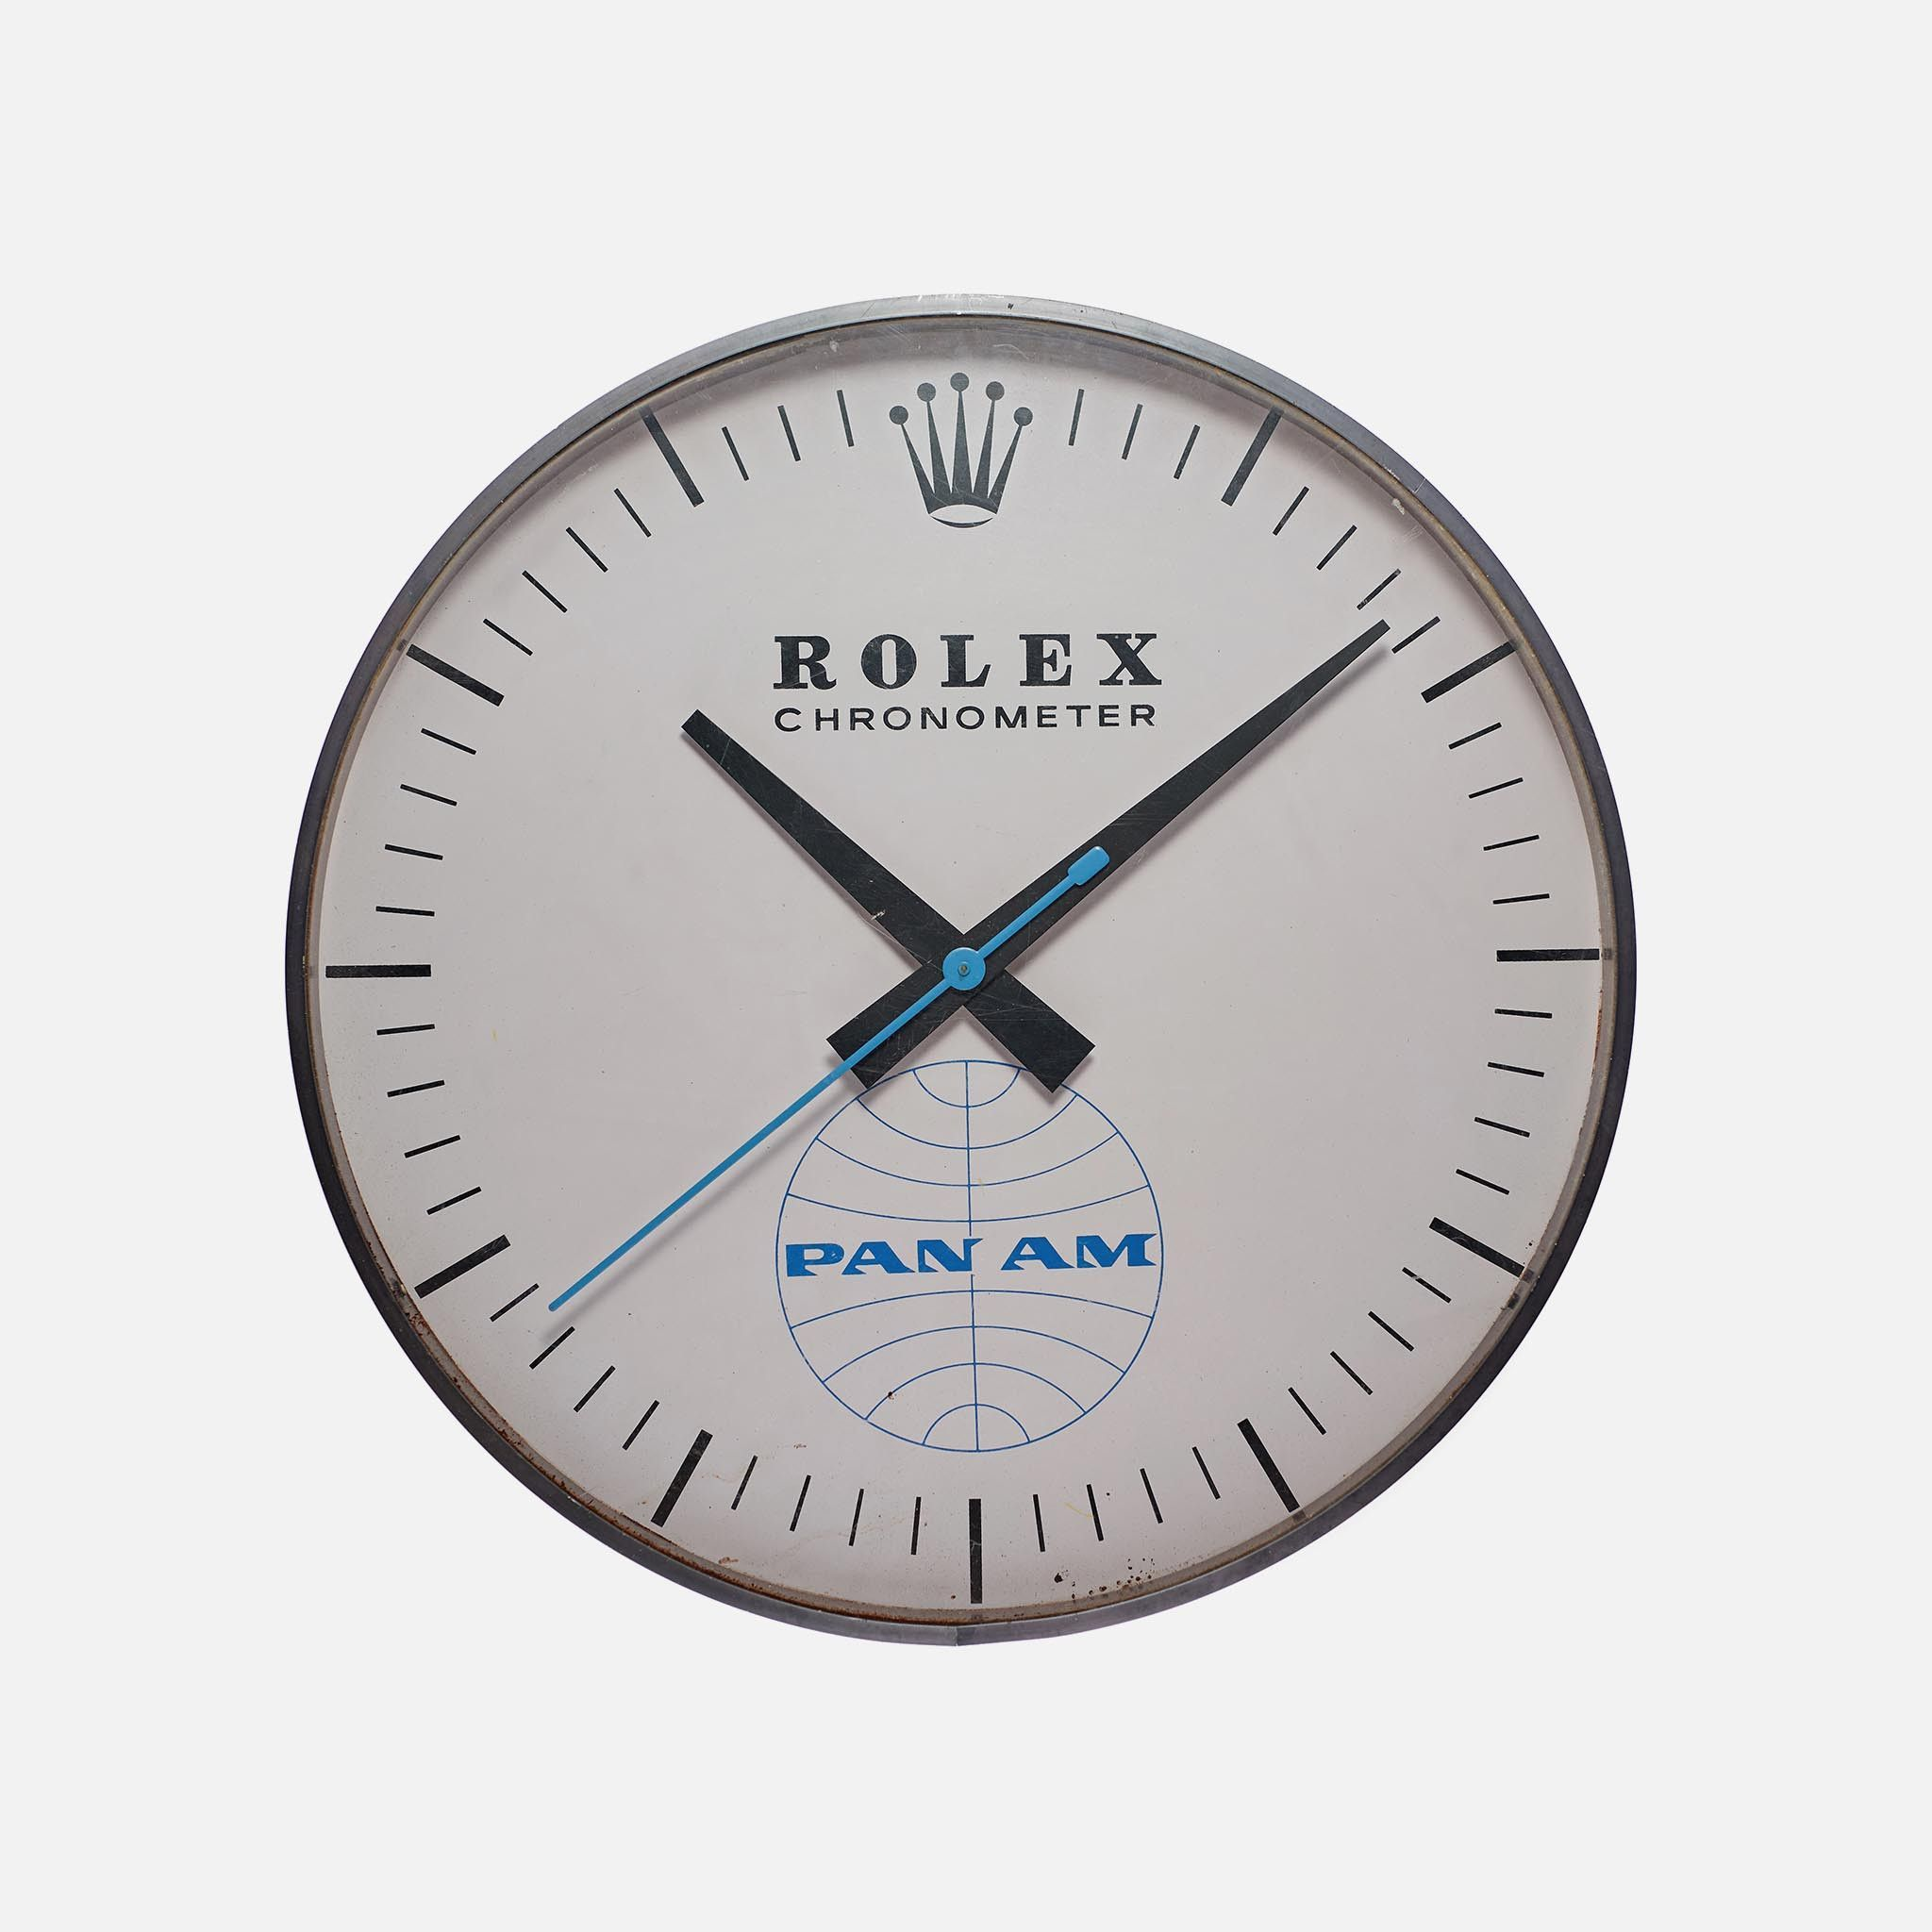 Rolex wall chronometer with pan am logo wall clocks vintage rolex wall chronometer with pan am logo amipublicfo Image collections